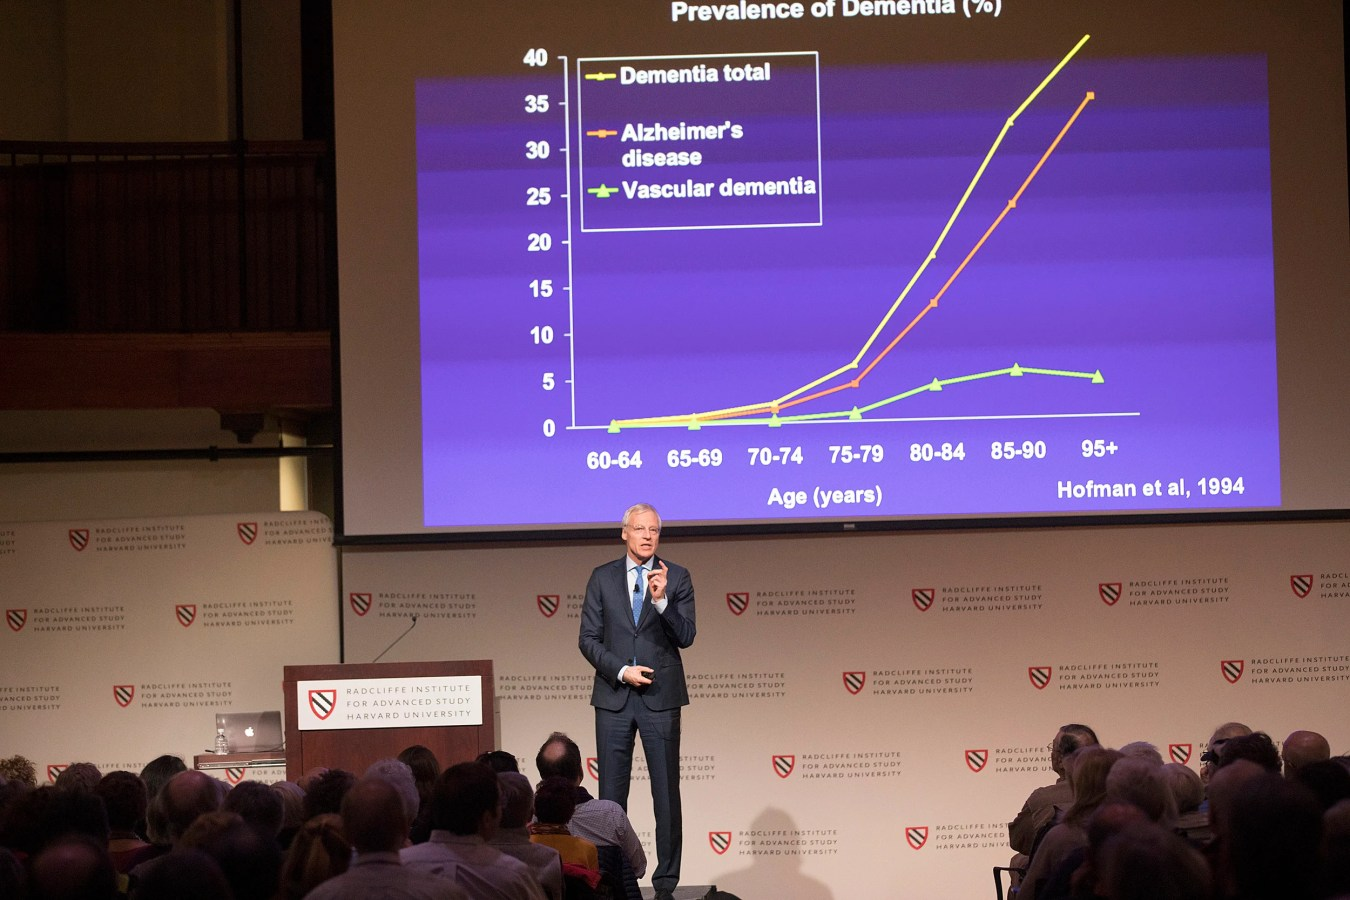 For those fortunate enough to live into their 90s, a growing likelihood for more people around the globe, there is a staggering 1-in-2 chance of contracting Alzheimer's disease.  Kris Snibbe/Harvard Staff Photographer